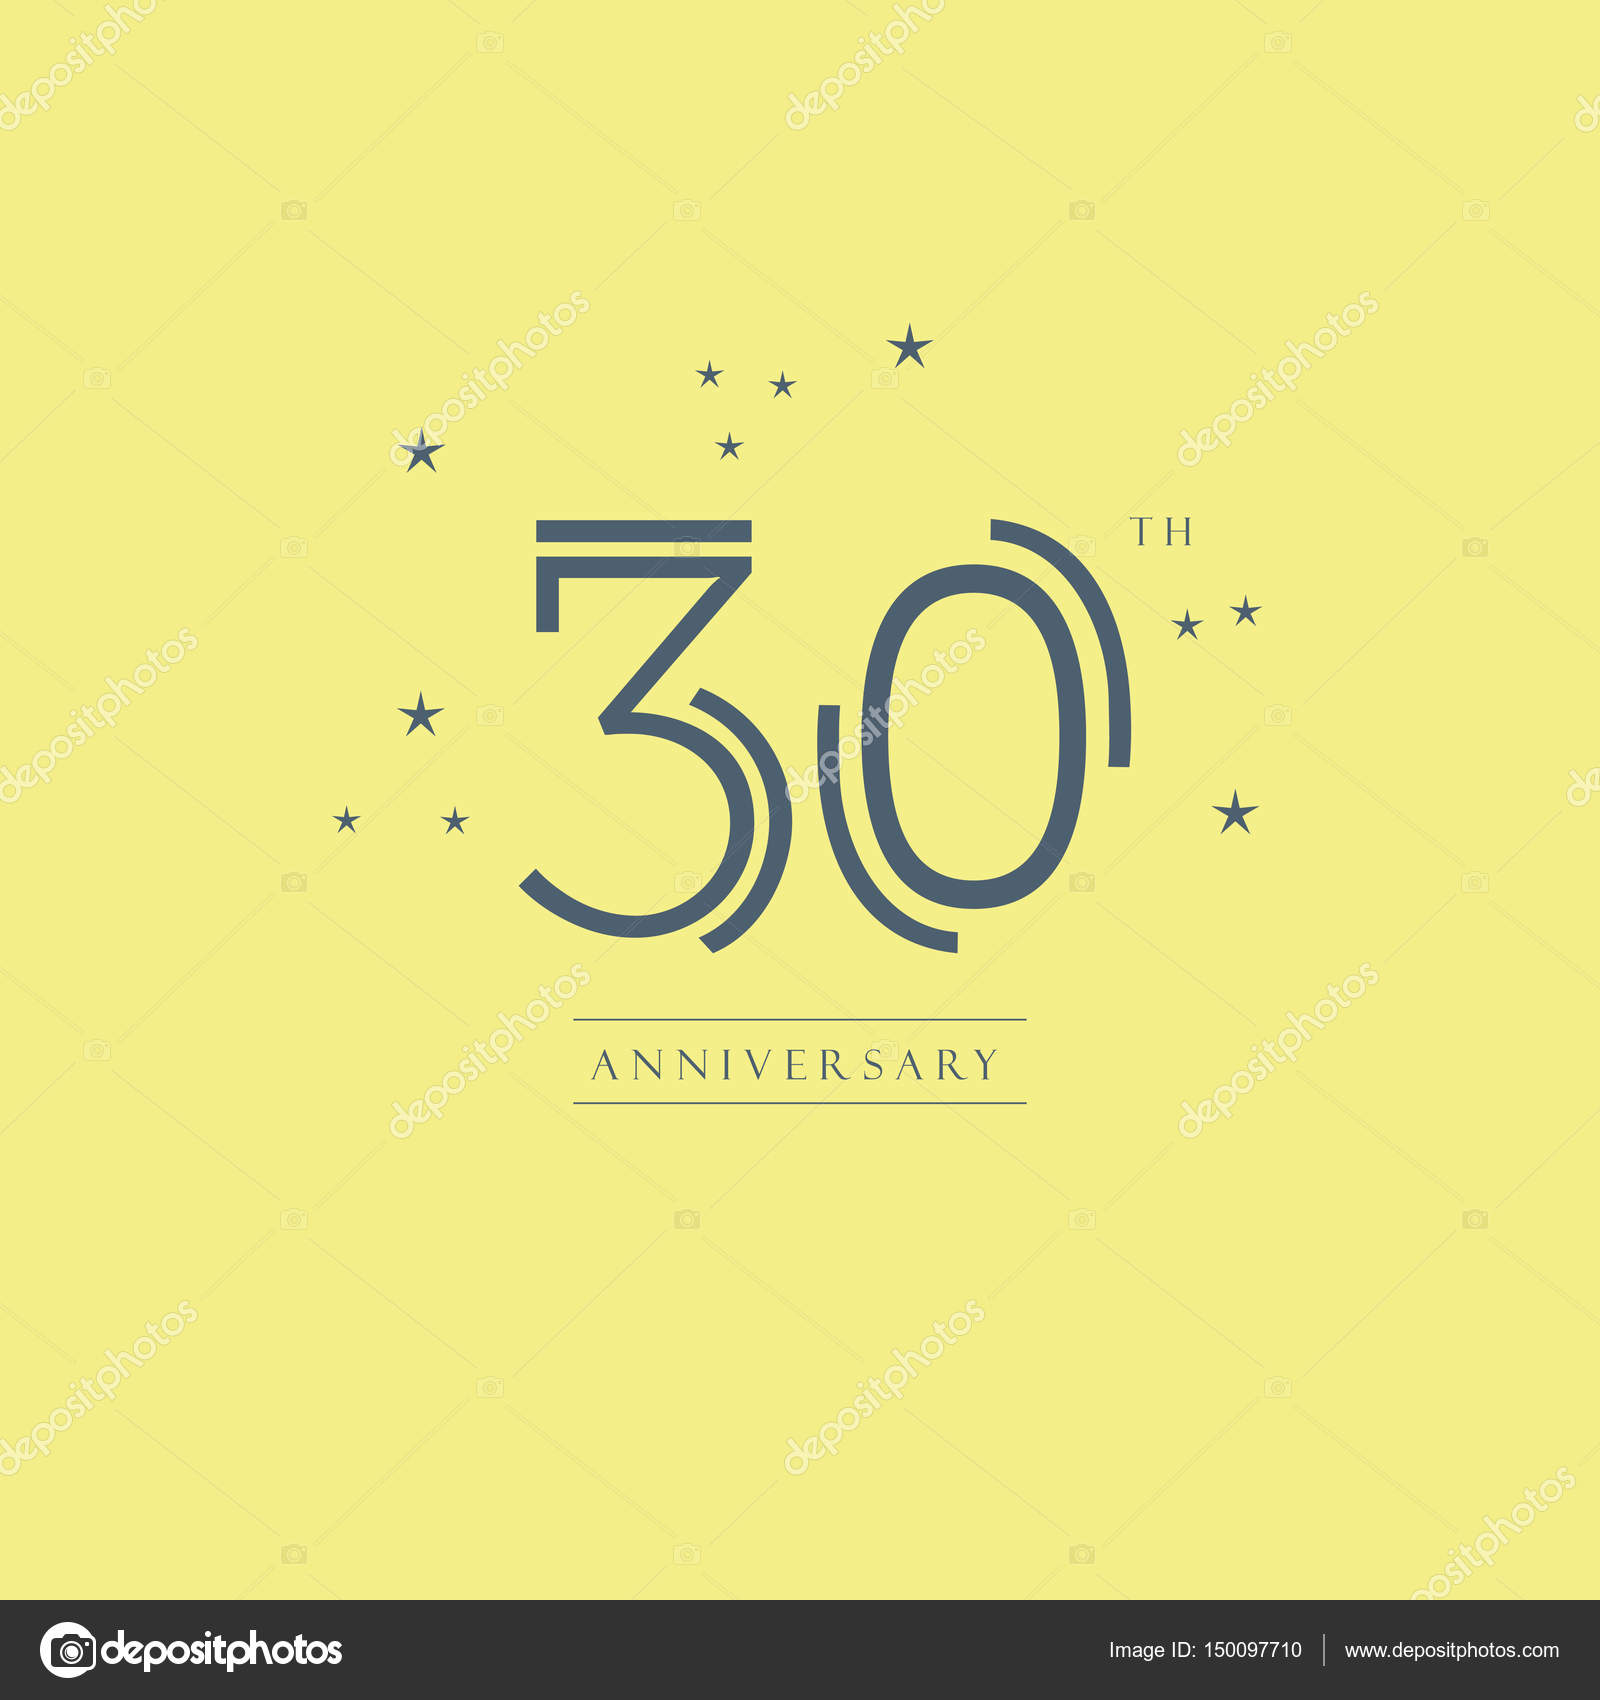 Anniversary Logo Designs  1237 Logos to Browse  Page 18